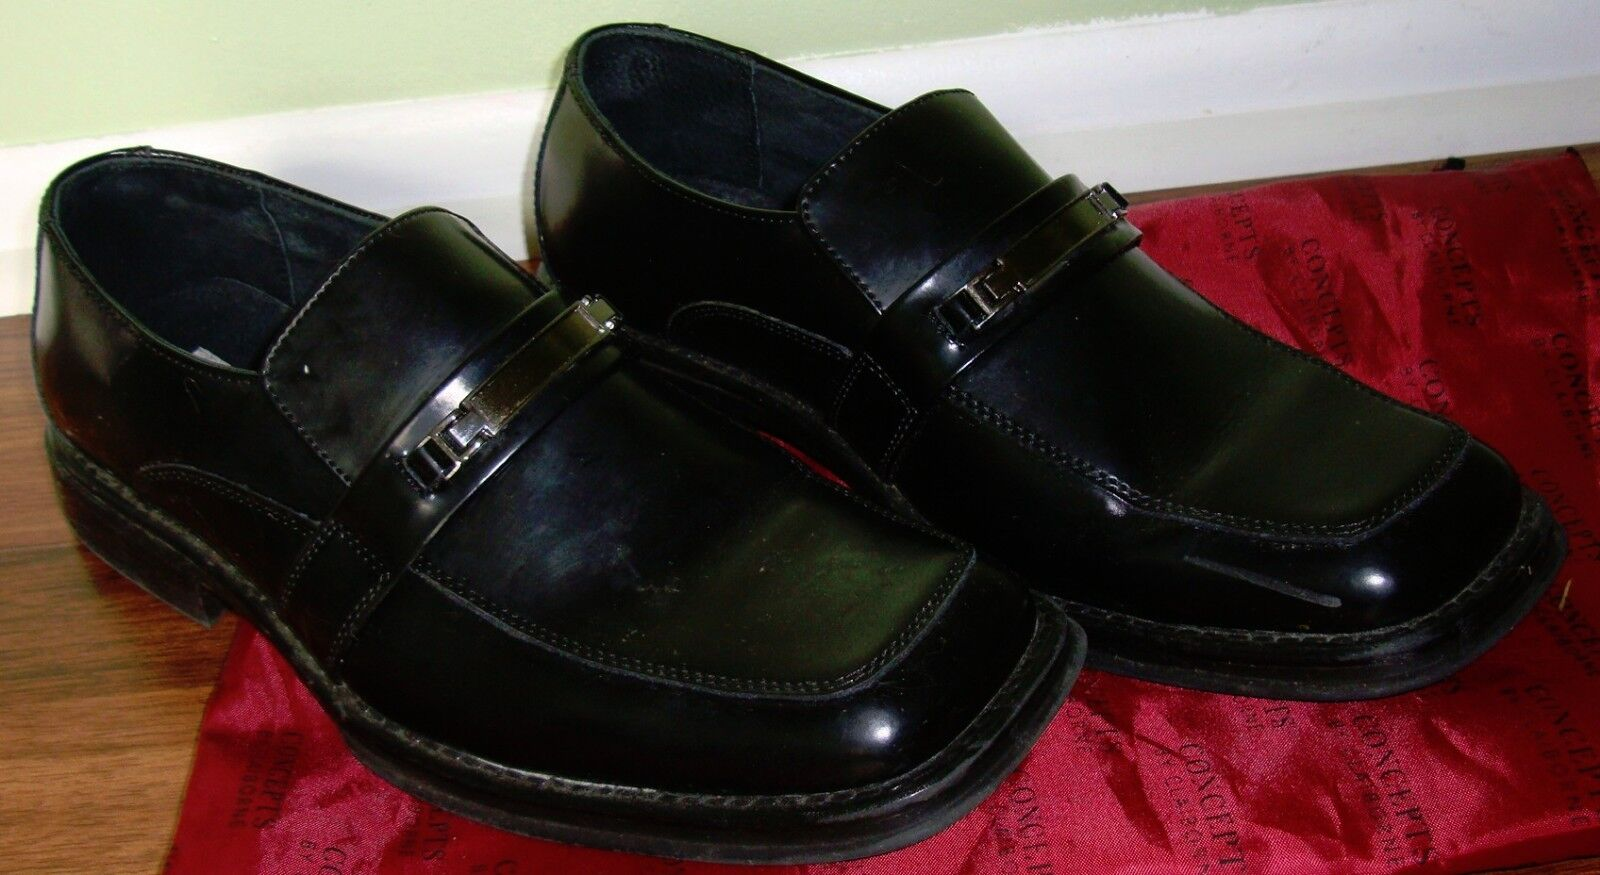 Claiborne Loafer Concepts Mens Shoes Classic Loafer Claiborne Style Leather Black, Size-10.5M 6f67d0